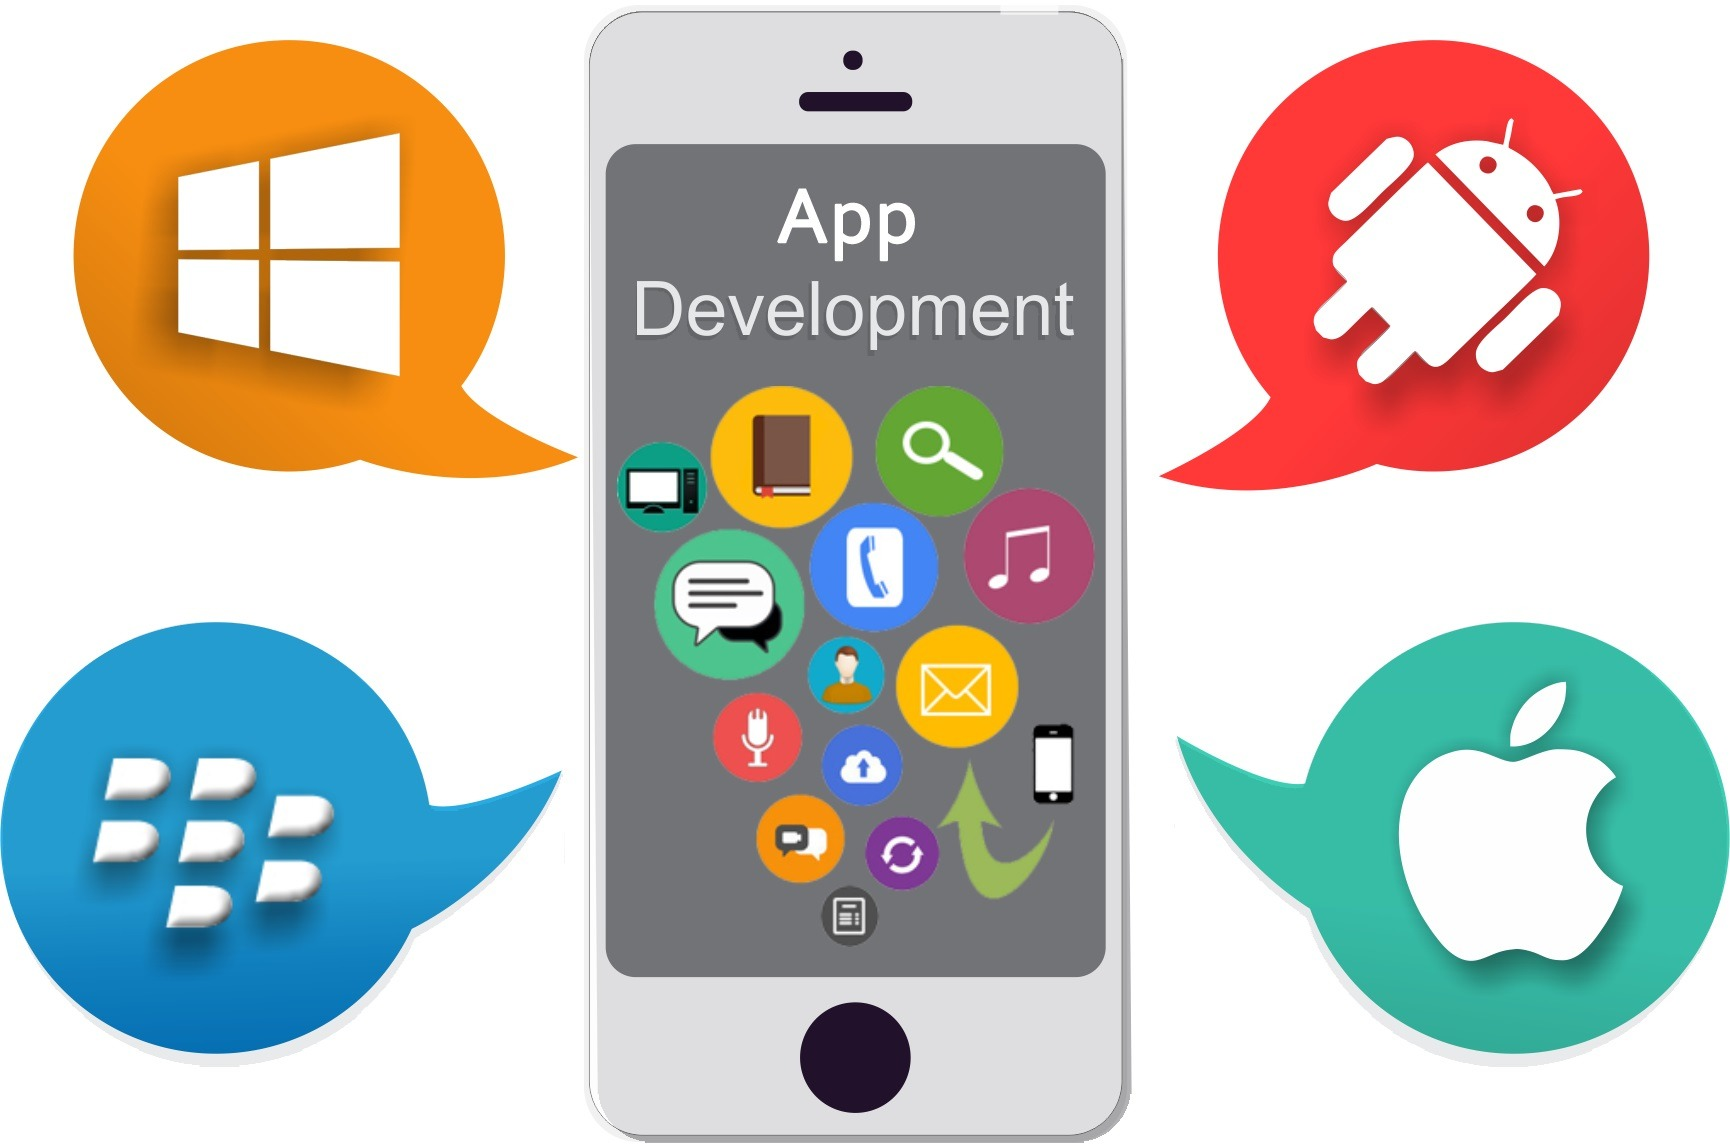 developing an app for that Fluper is leading top mobile app development company in india,usa, uae we provide custom mobile app development services for various platforms like android, ios, iphone and ipad.